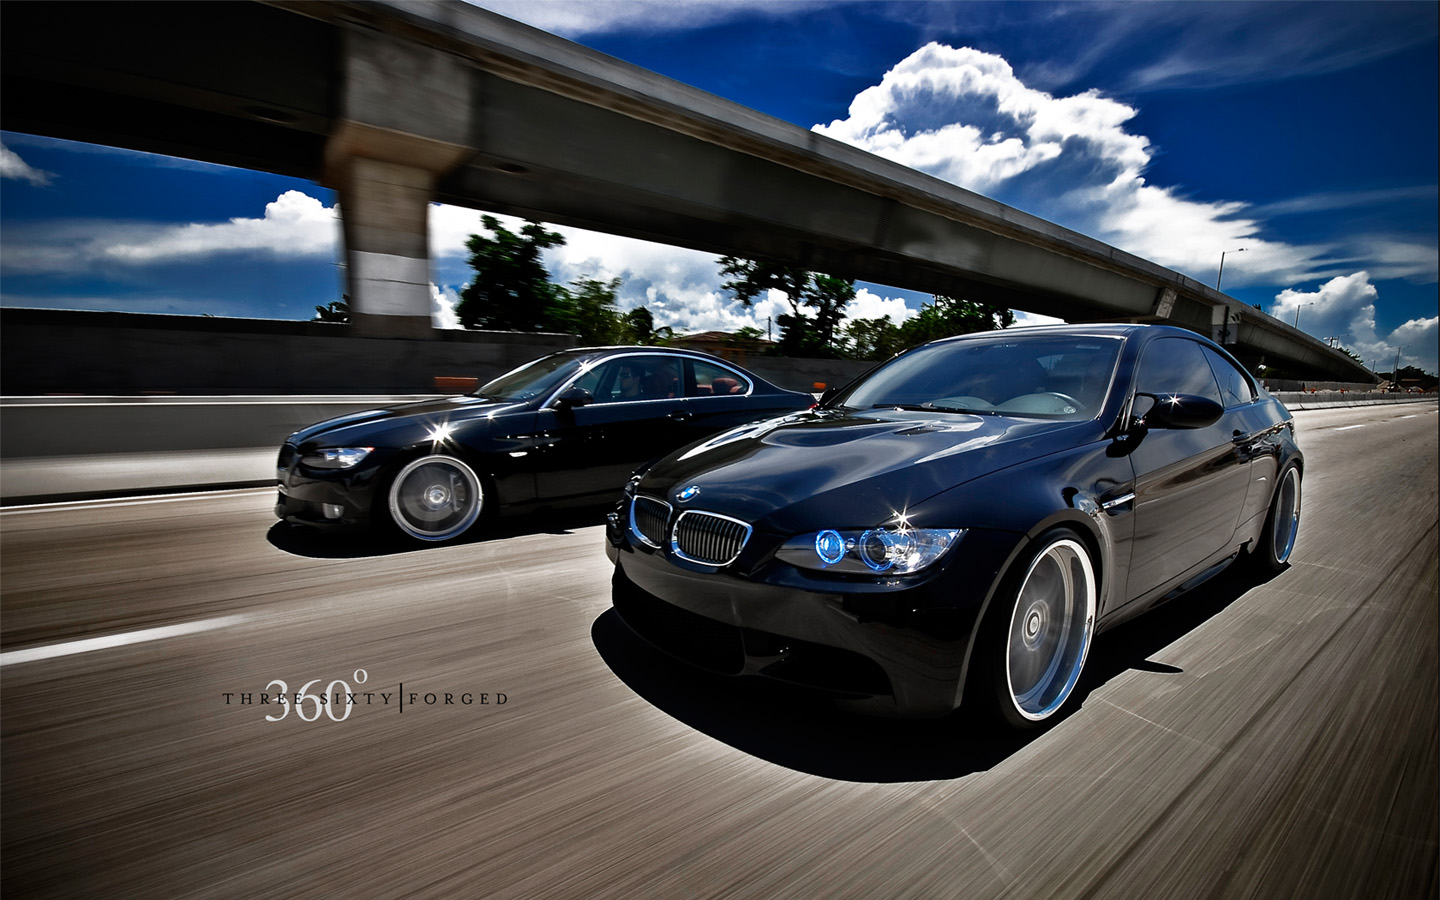 Awesome BMW Wallpaper